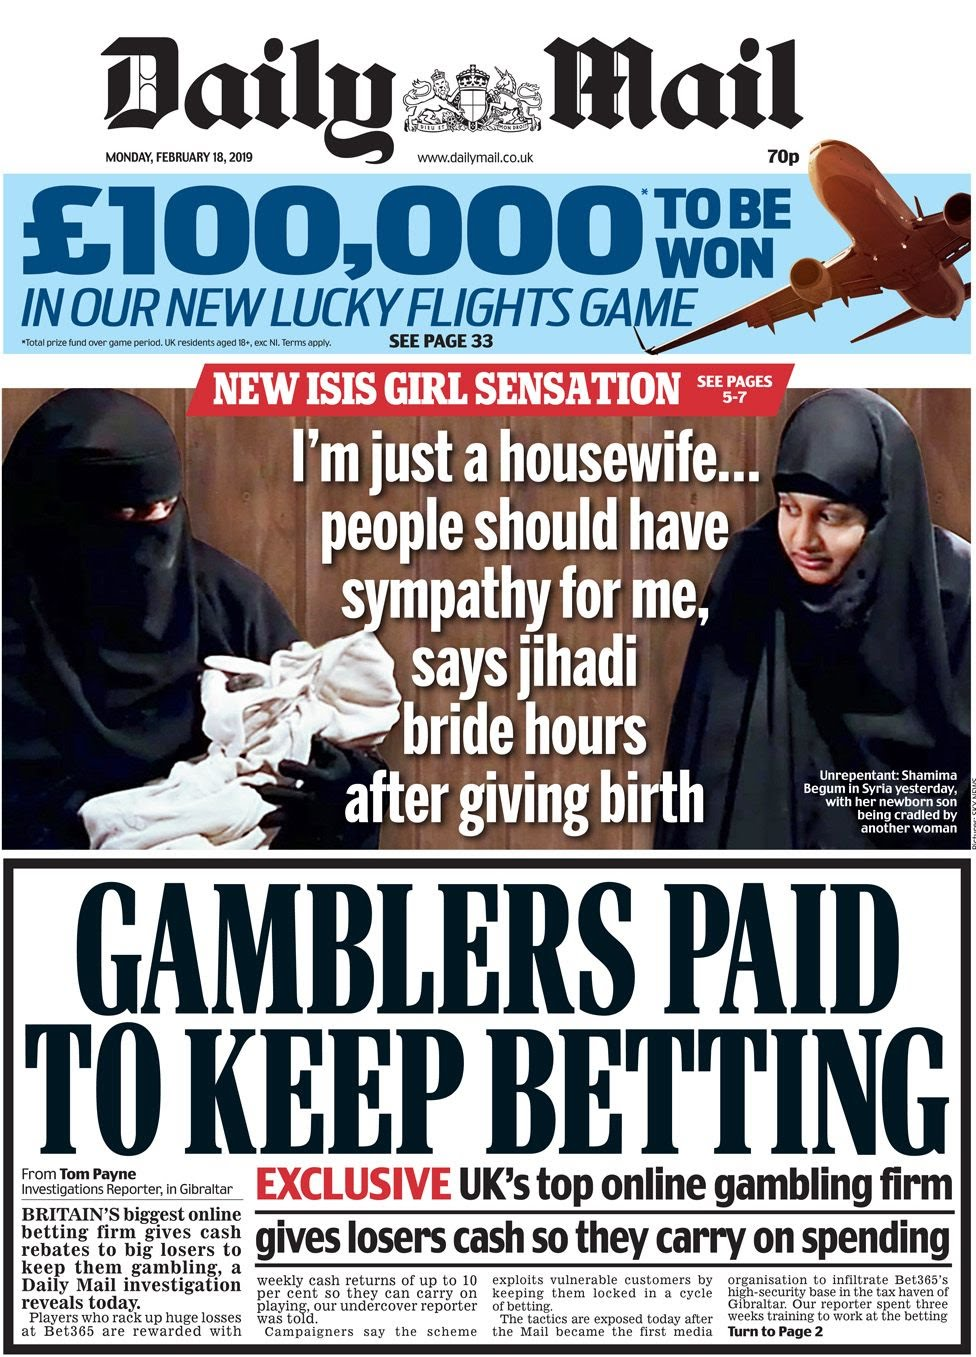 The Daily Mail front page on 18 February 2019